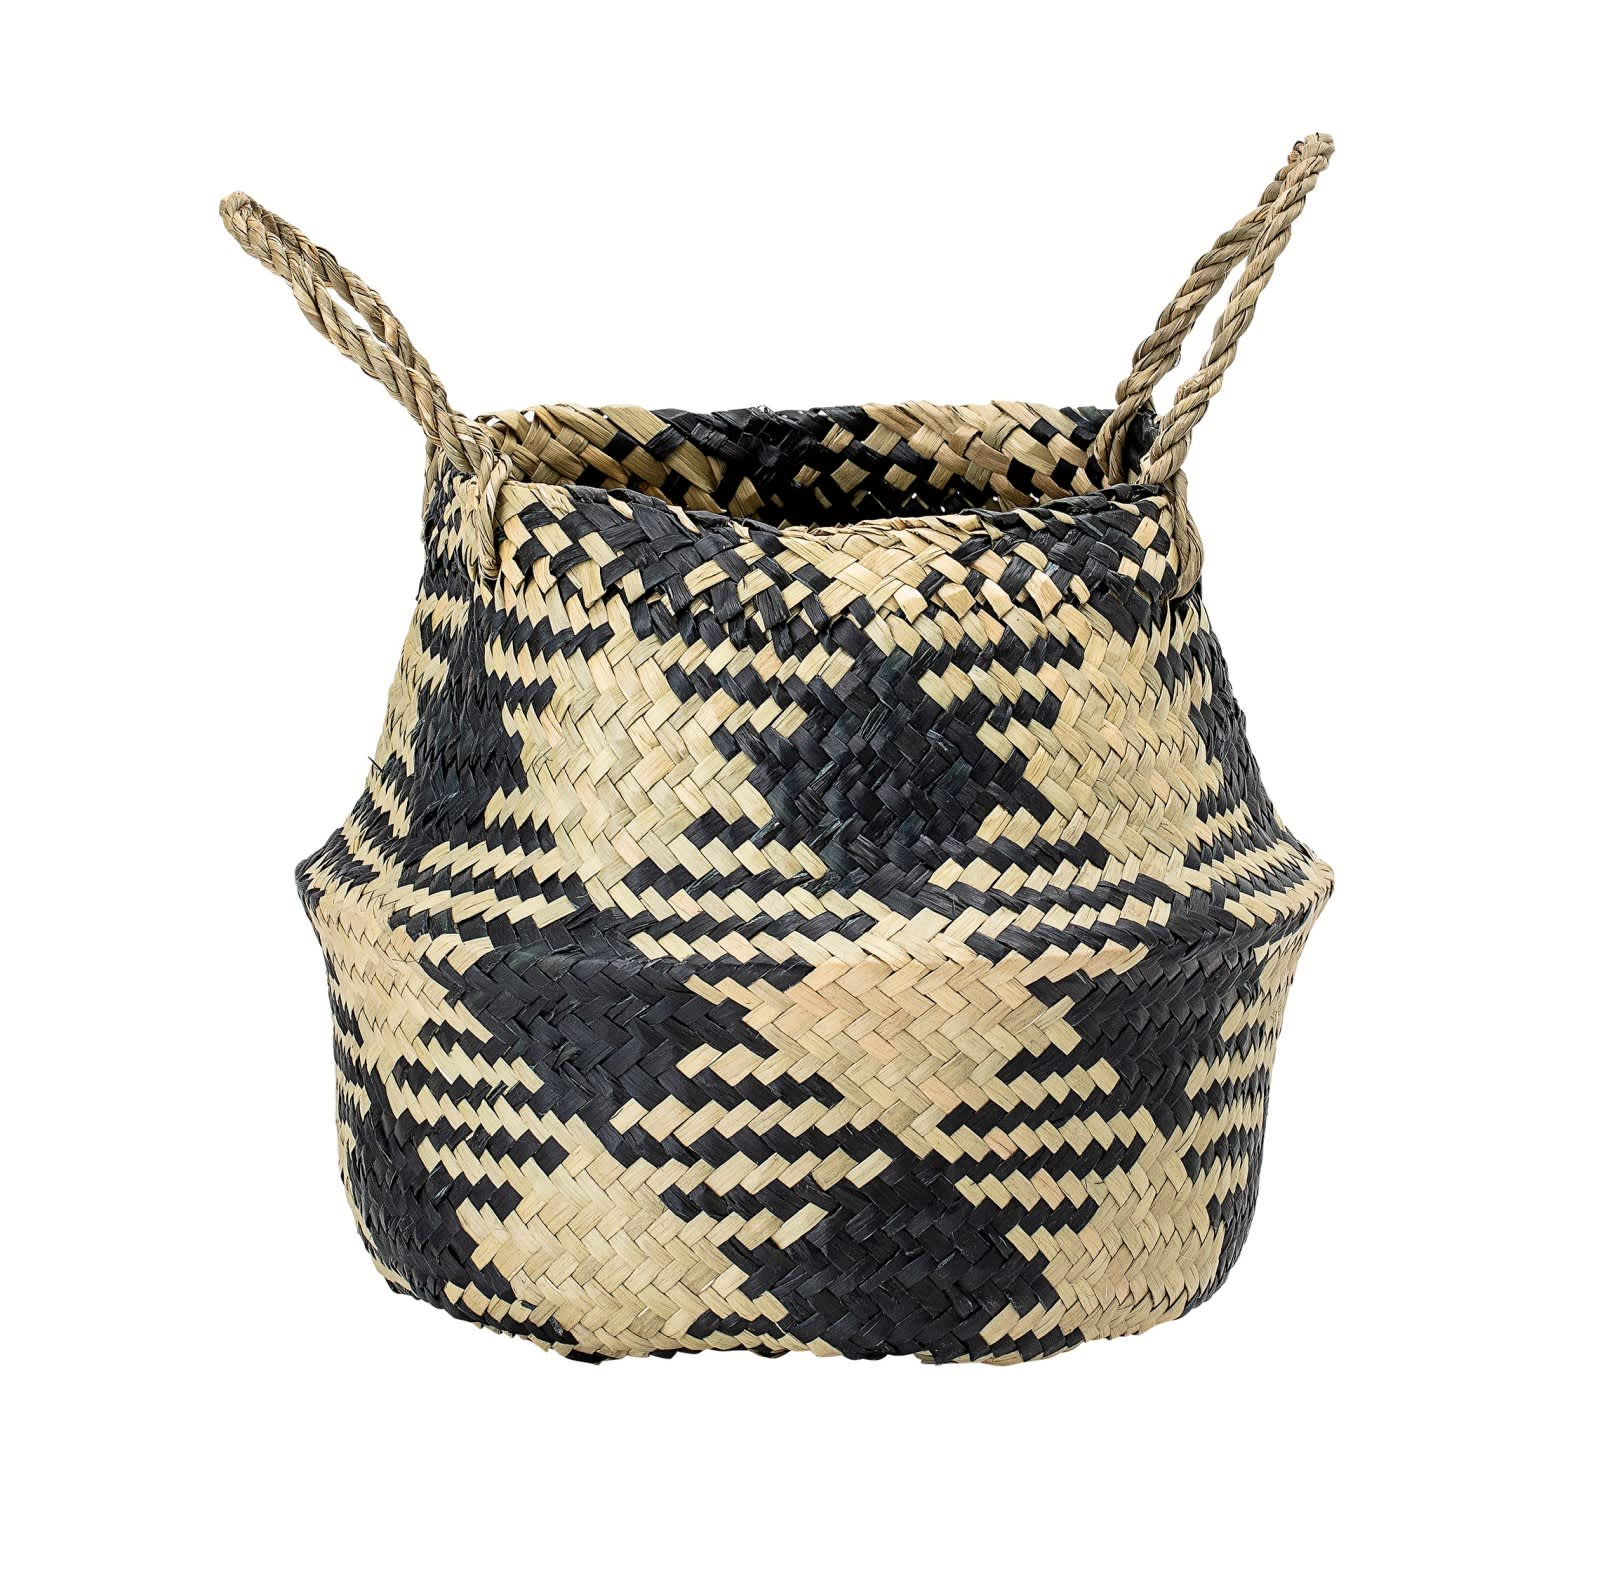 Bloomsbury Small seagrass basket